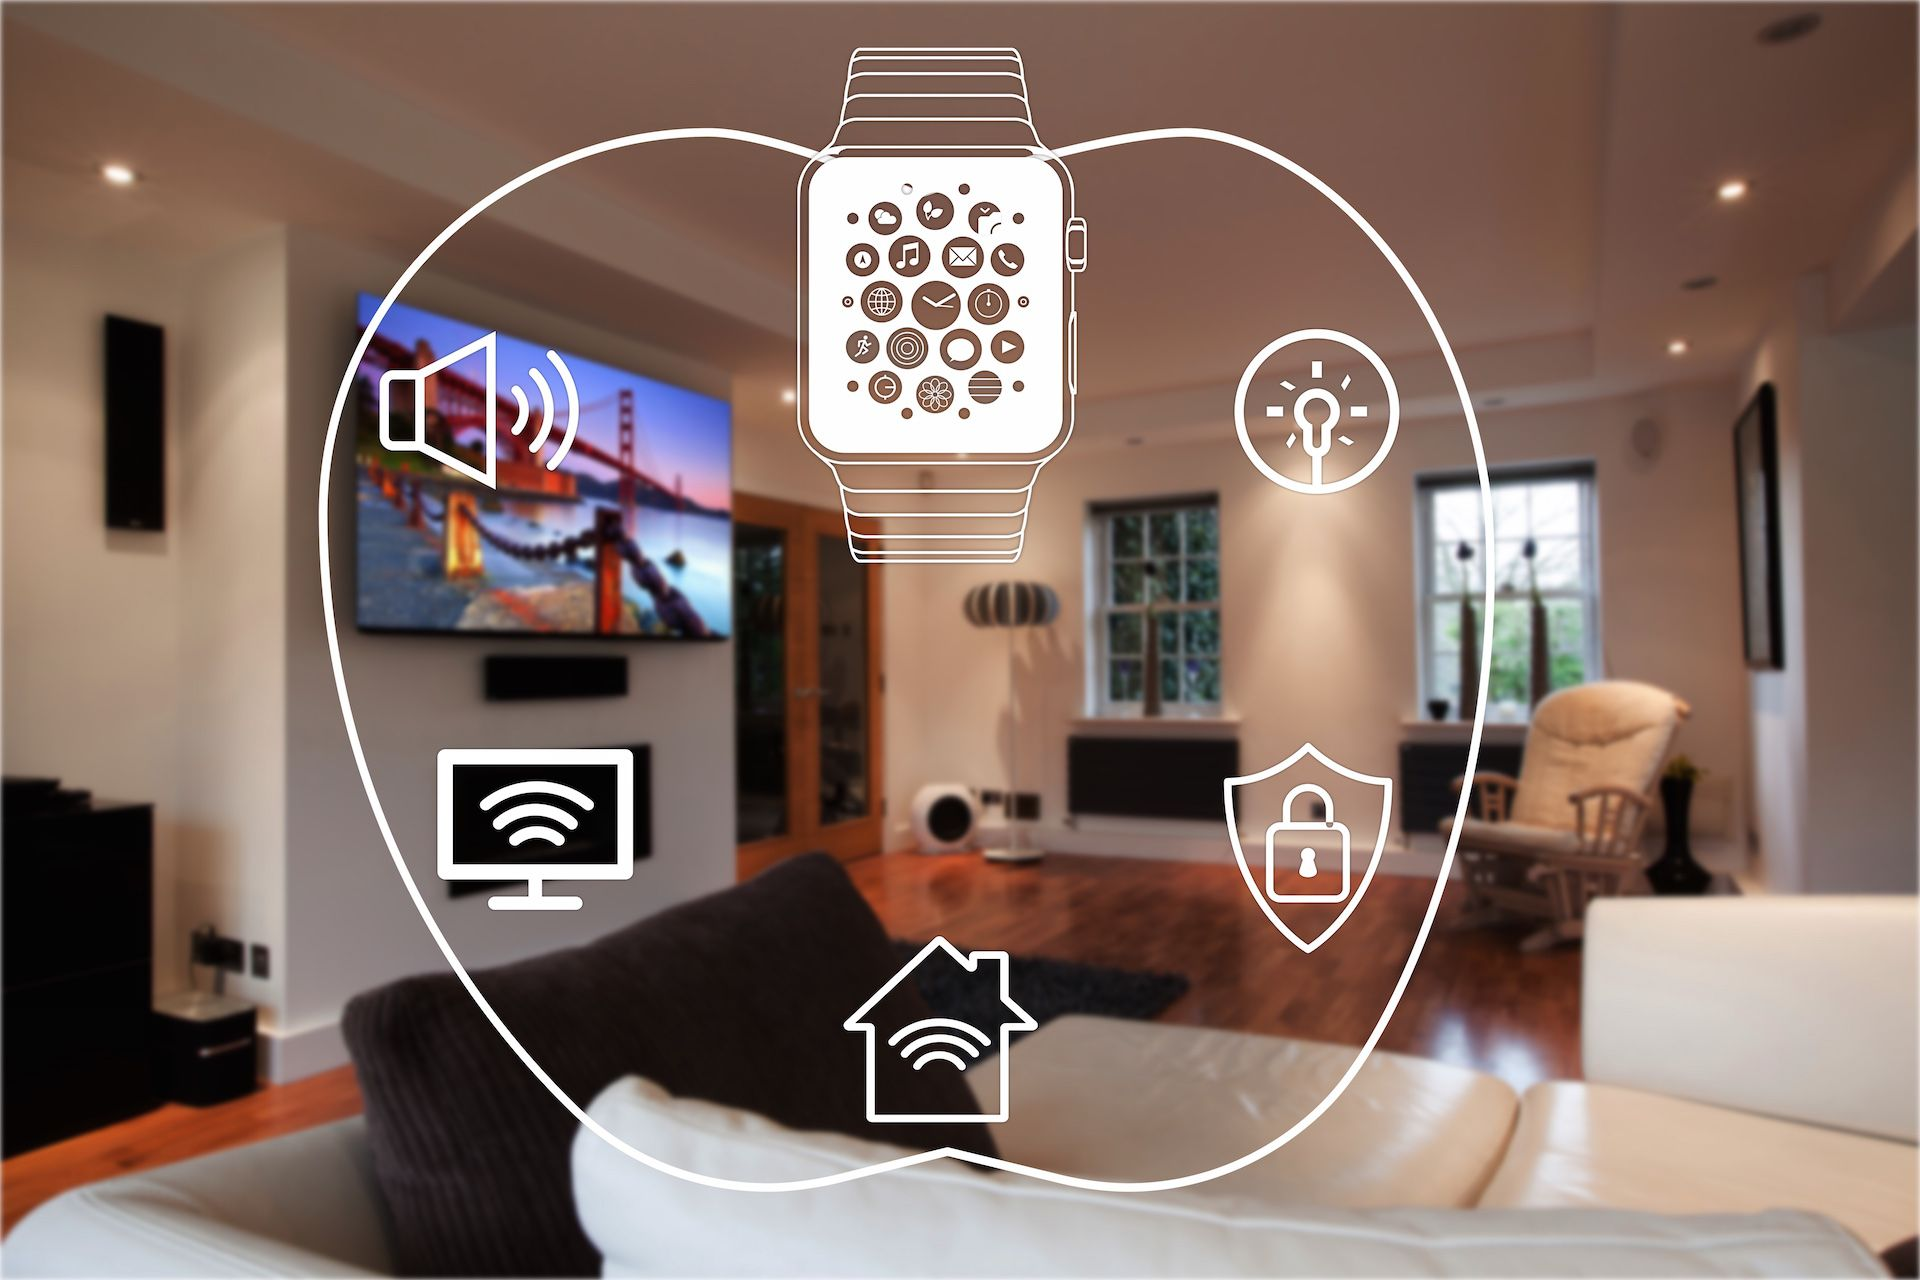 The future of the smart home is cross-connection